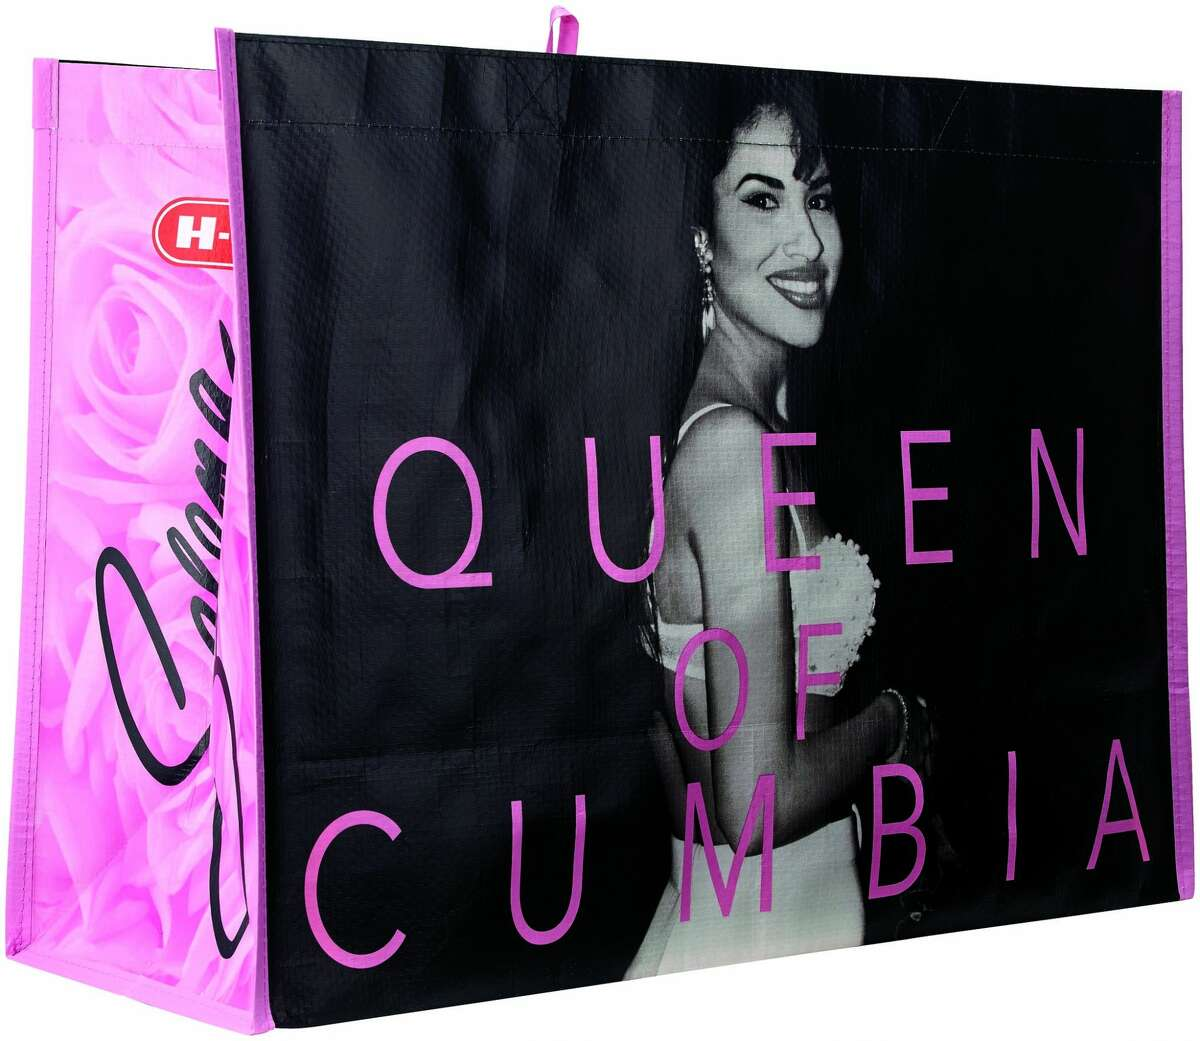 On Friday at 9 a.m., H-E-B will start selling limited edition, reusable tote bags featuring the Queen of Cumbia for $2 at select locations across Texas and online.